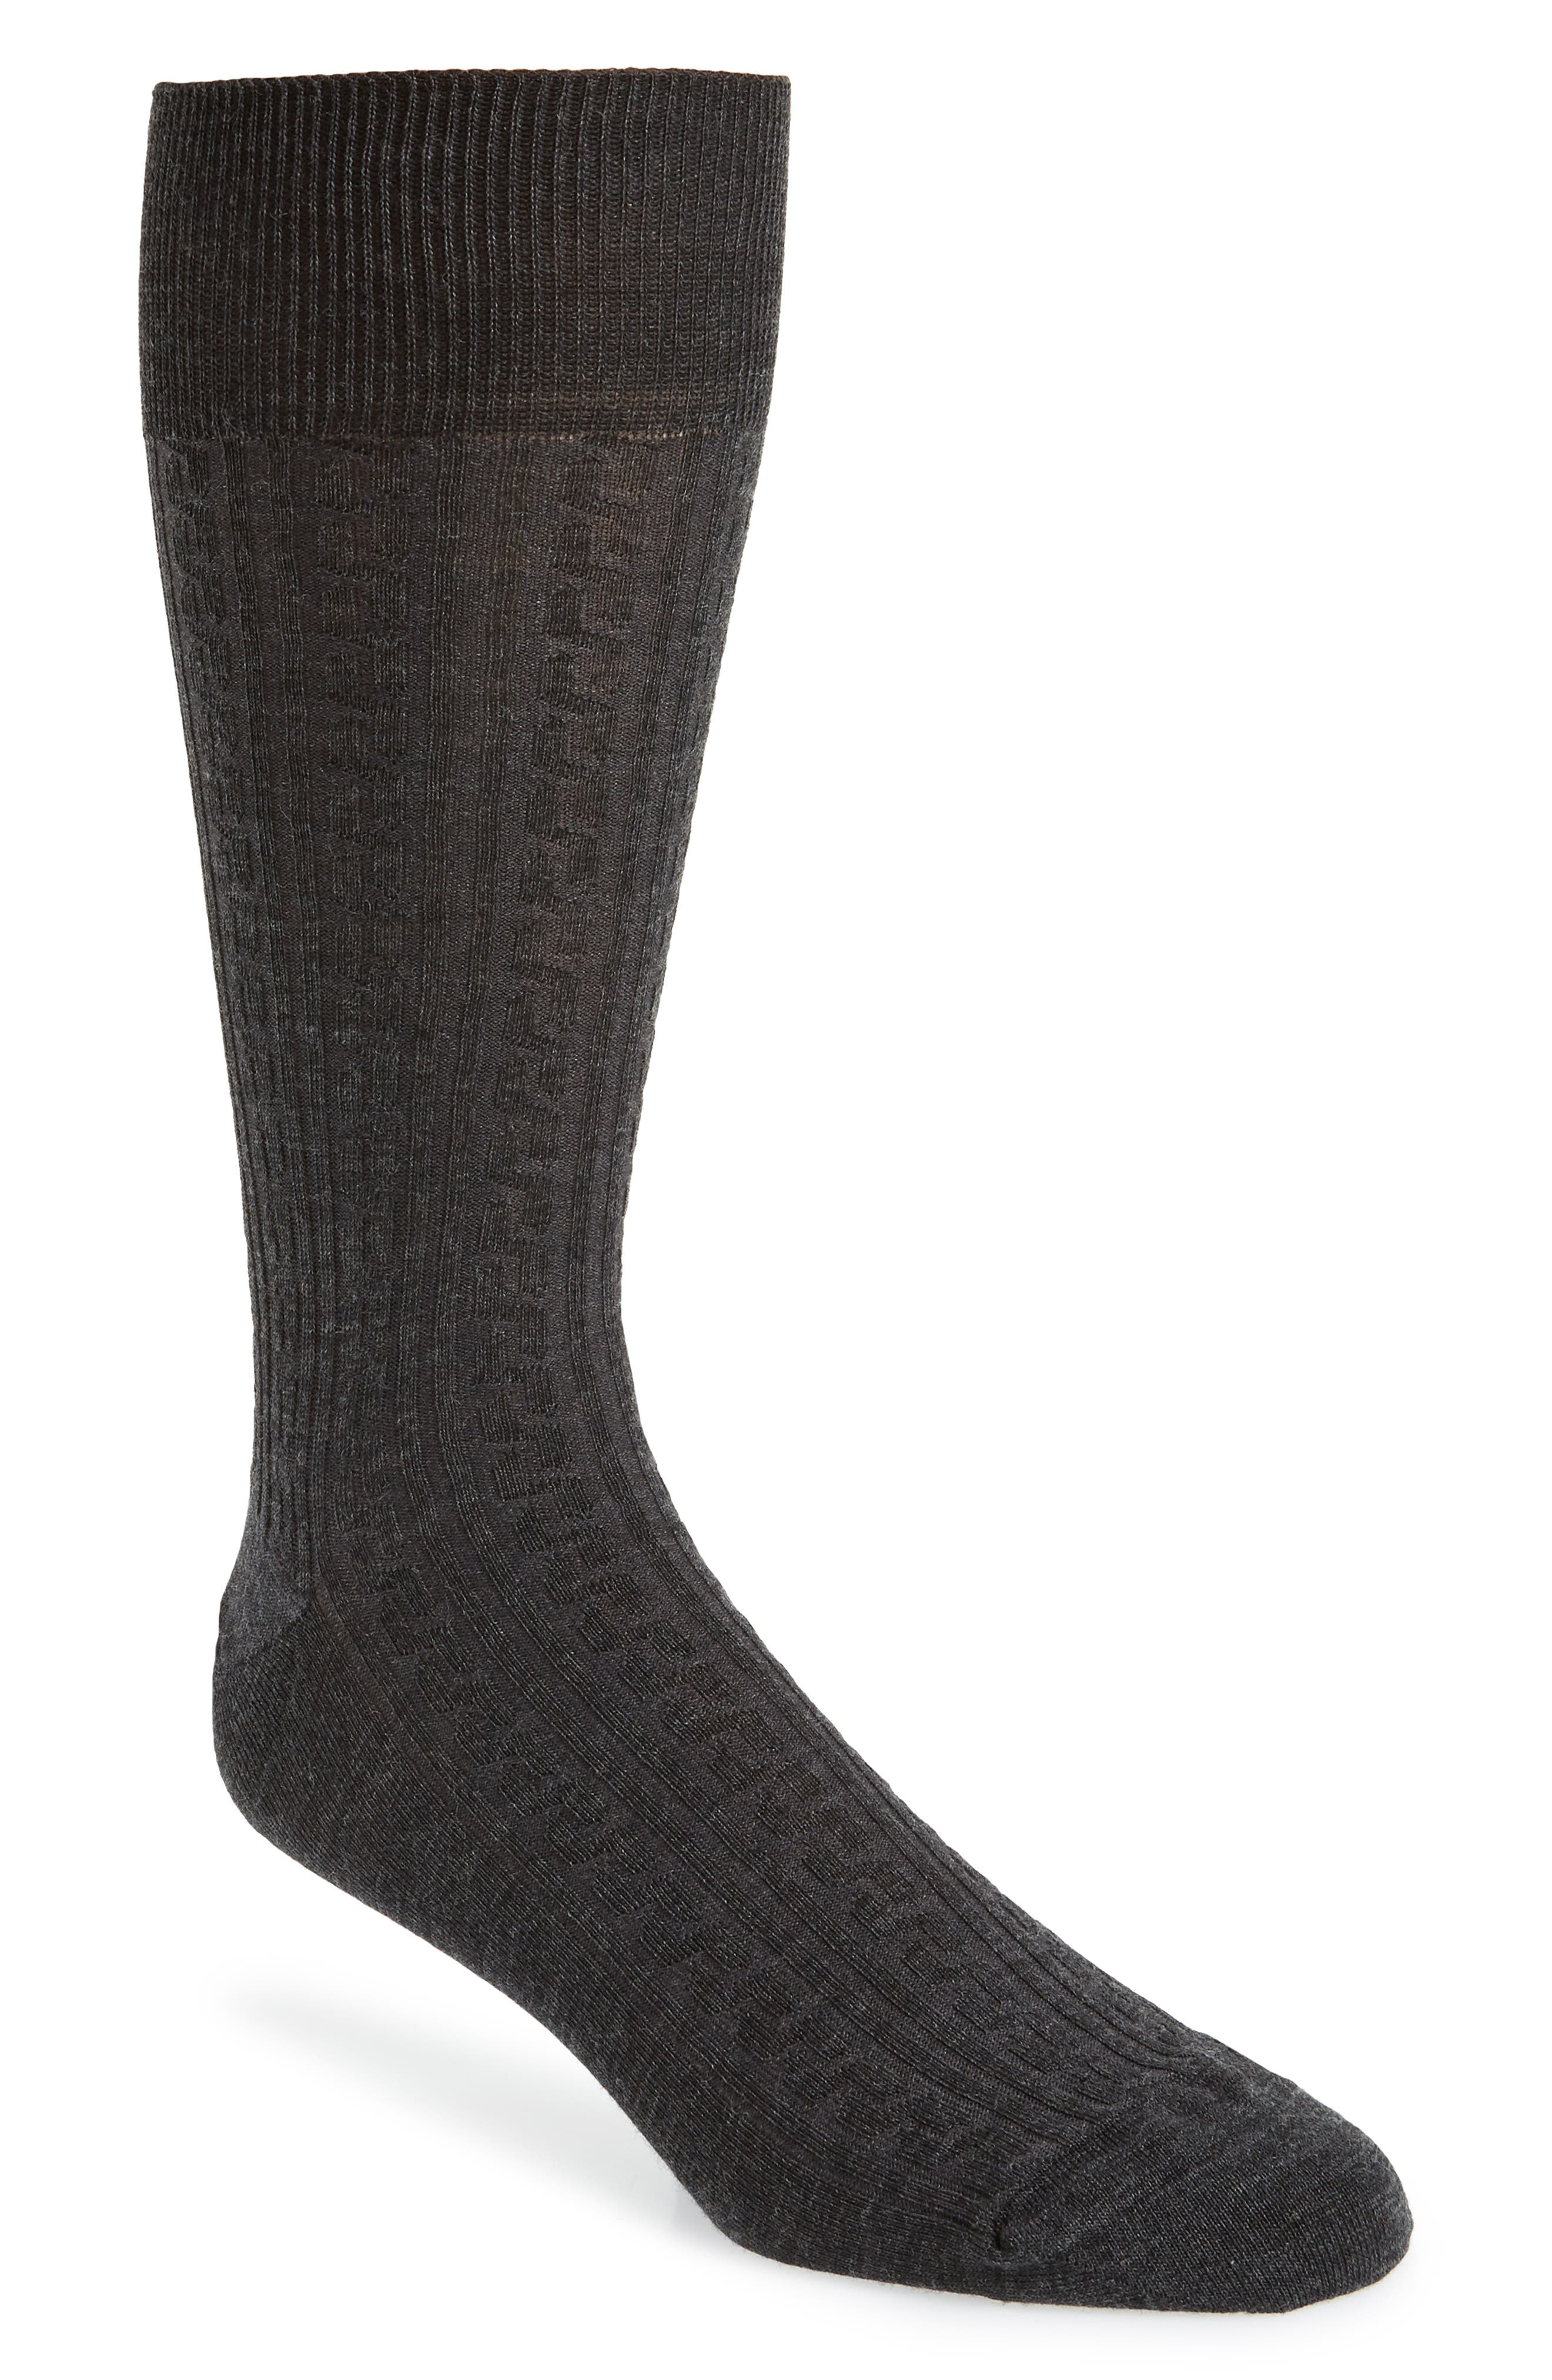 Cable Knit Merino Blend Socks,                             Main thumbnail 1, color,                             CHARCOAL HEATHER